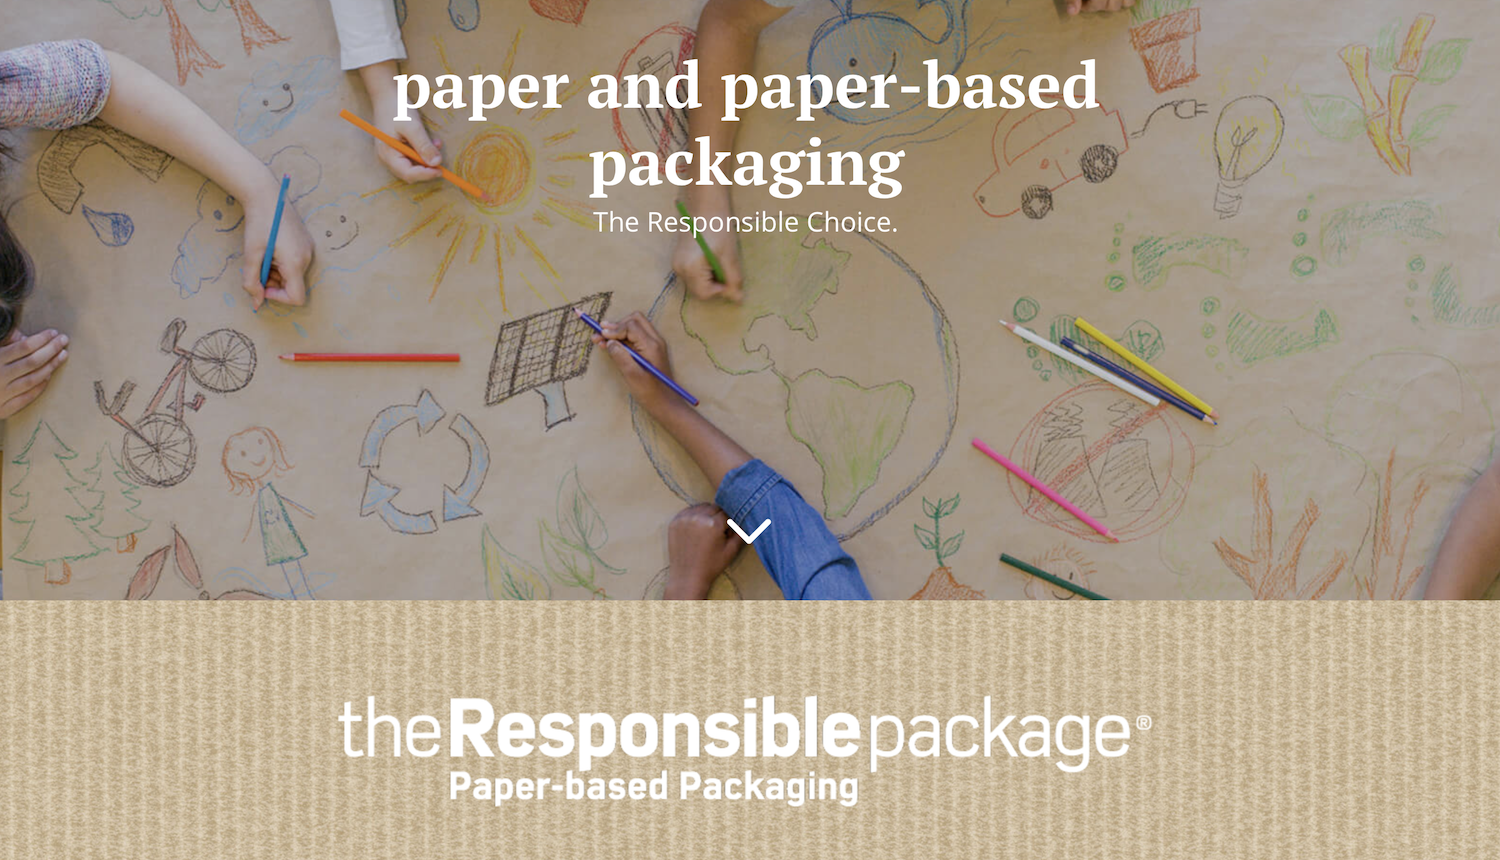 Pratt Industries | The Responsible Package